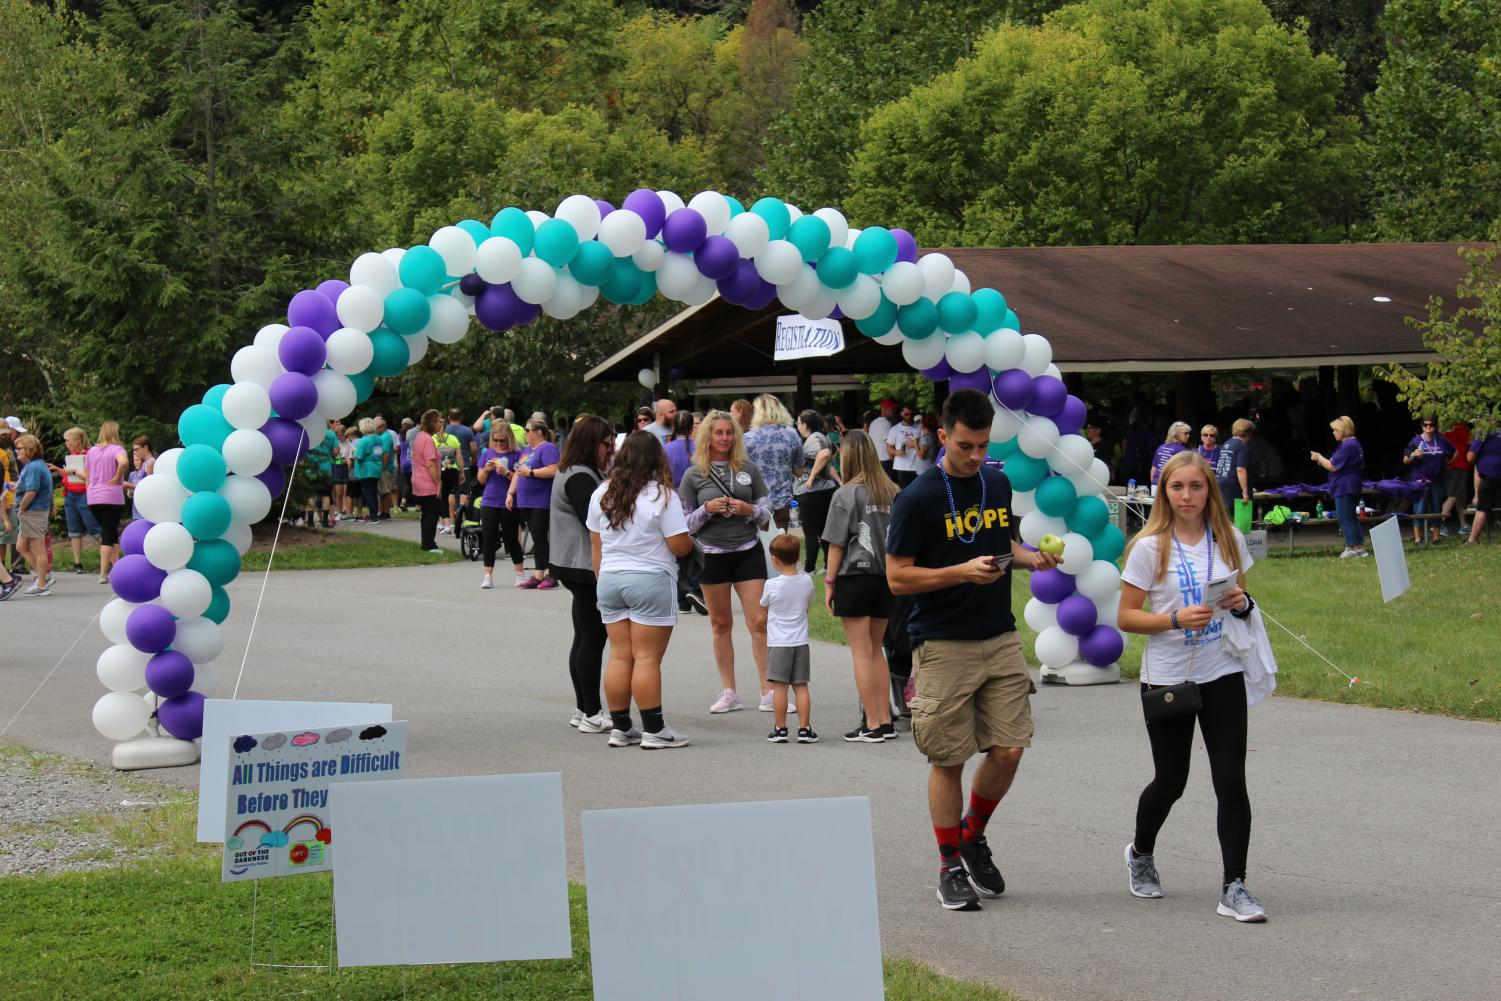 #rememberingthosewelove. Walkers gather under the balloon entrance to begin the suicide prevention walk.